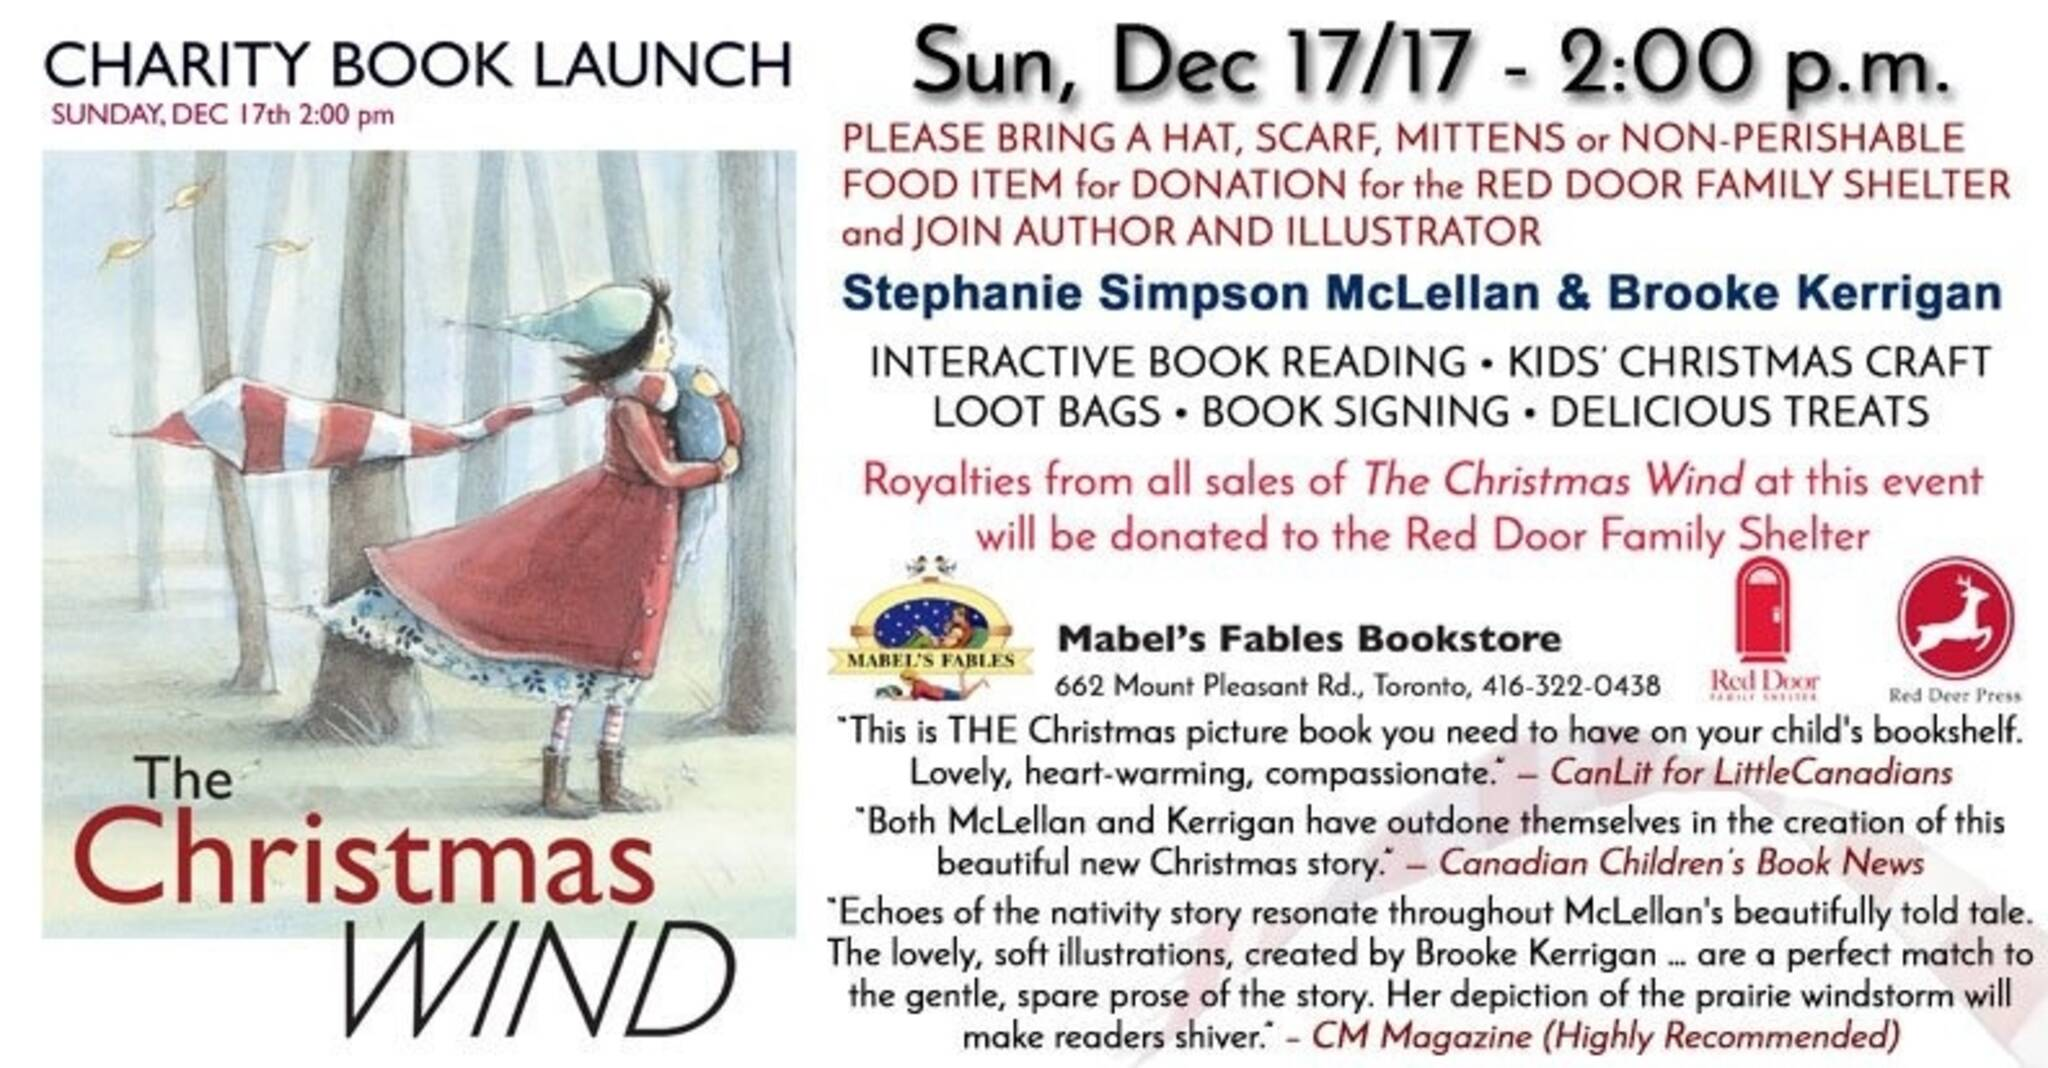 Charity Book Launch